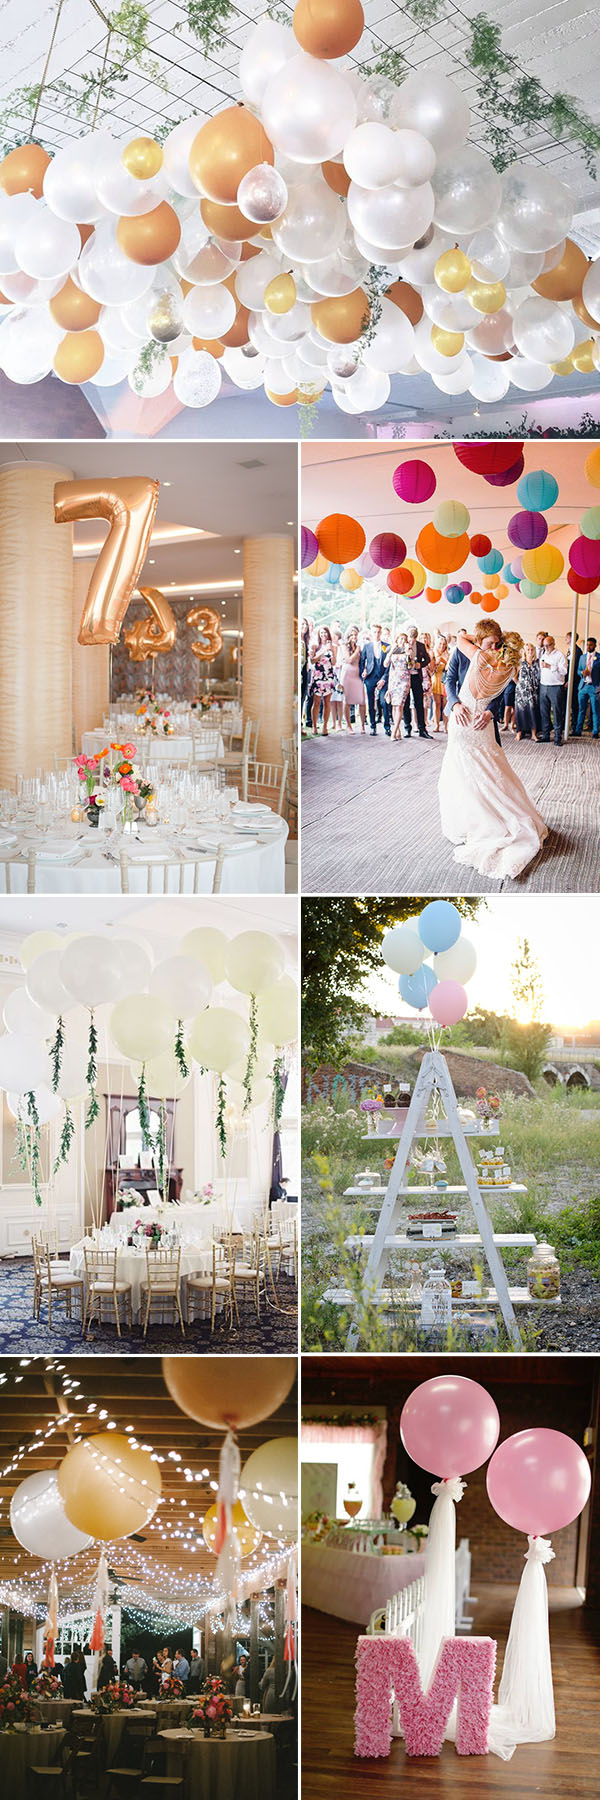 45 Creative Fun Ways To Incorporate Balloons Into Your Big Day